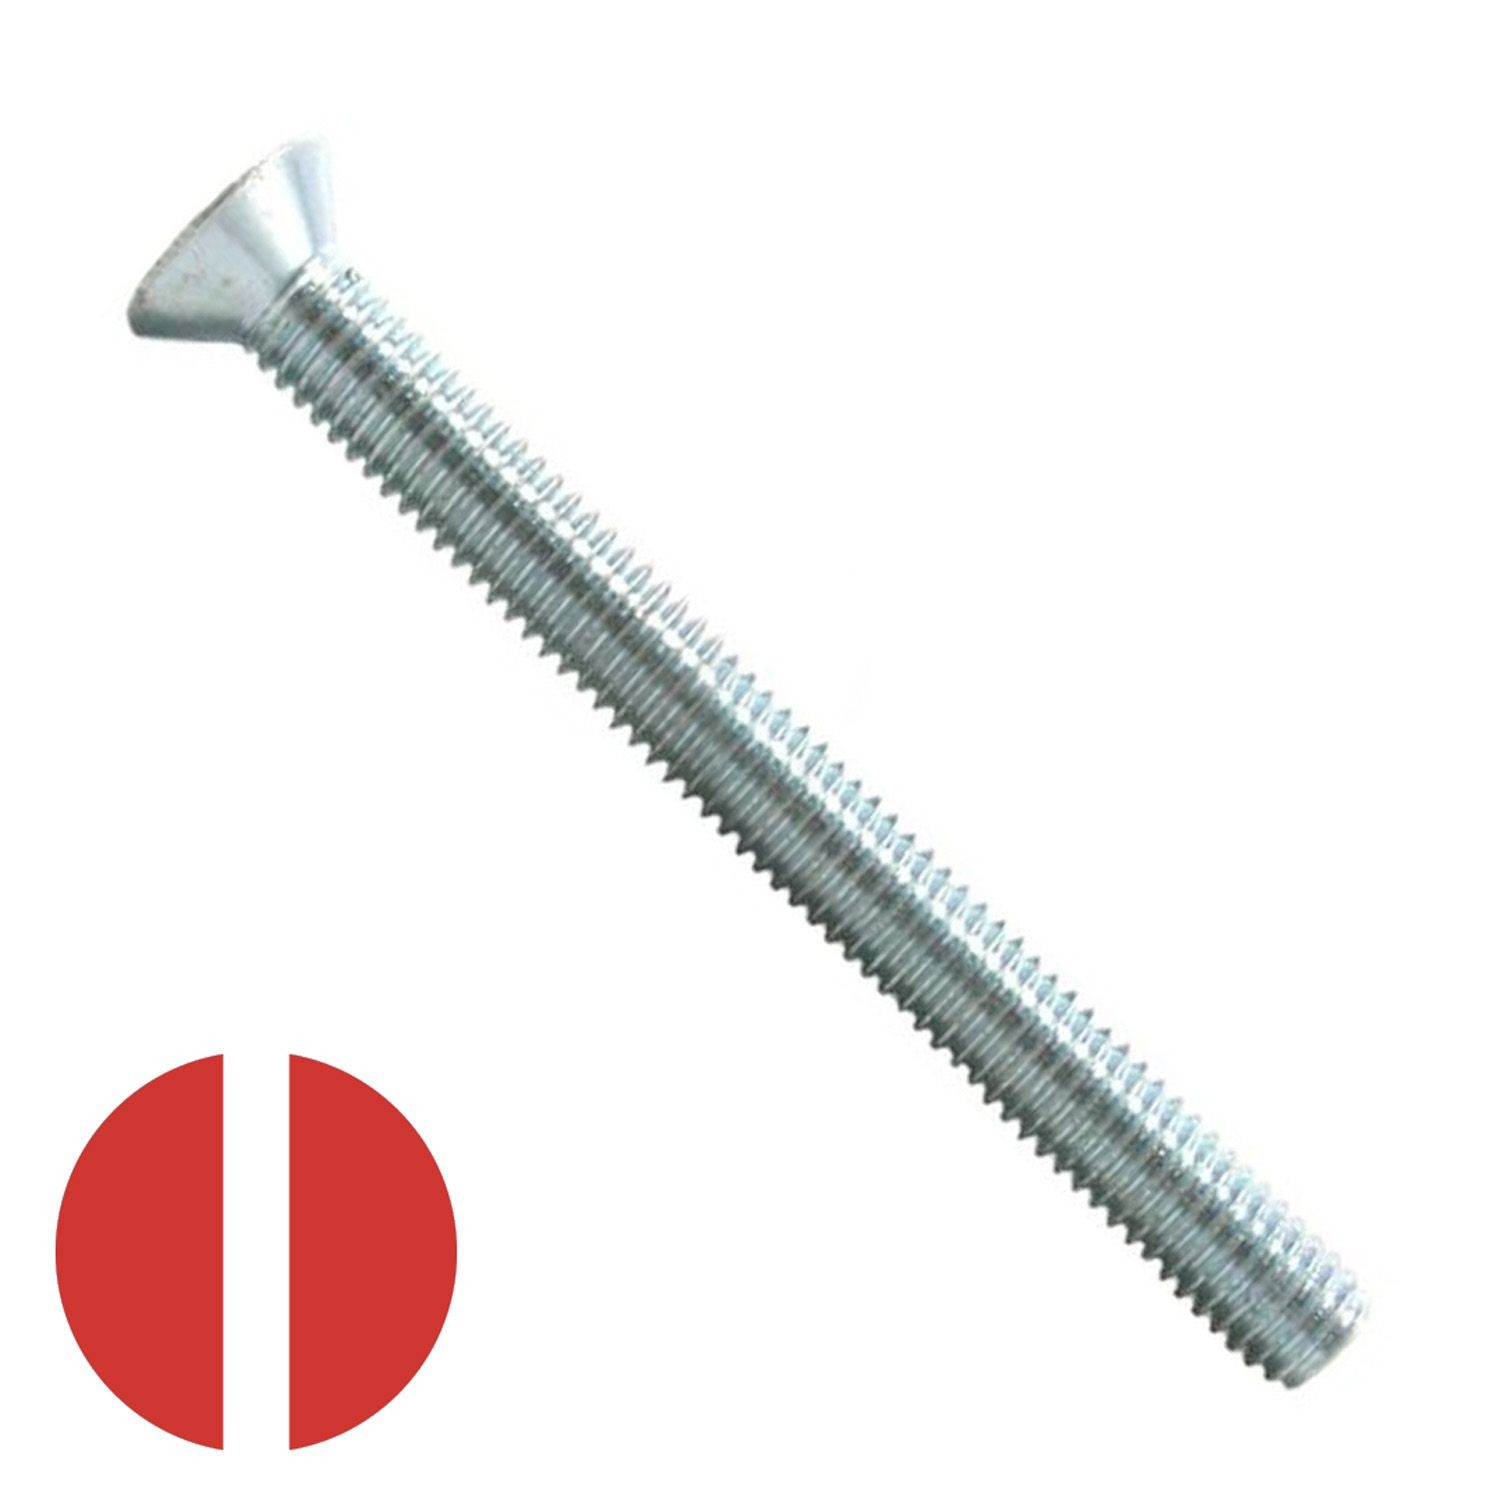 "#10-32 x 1/2"" Zinc Plated Slotted Flat Head Machine Screw"